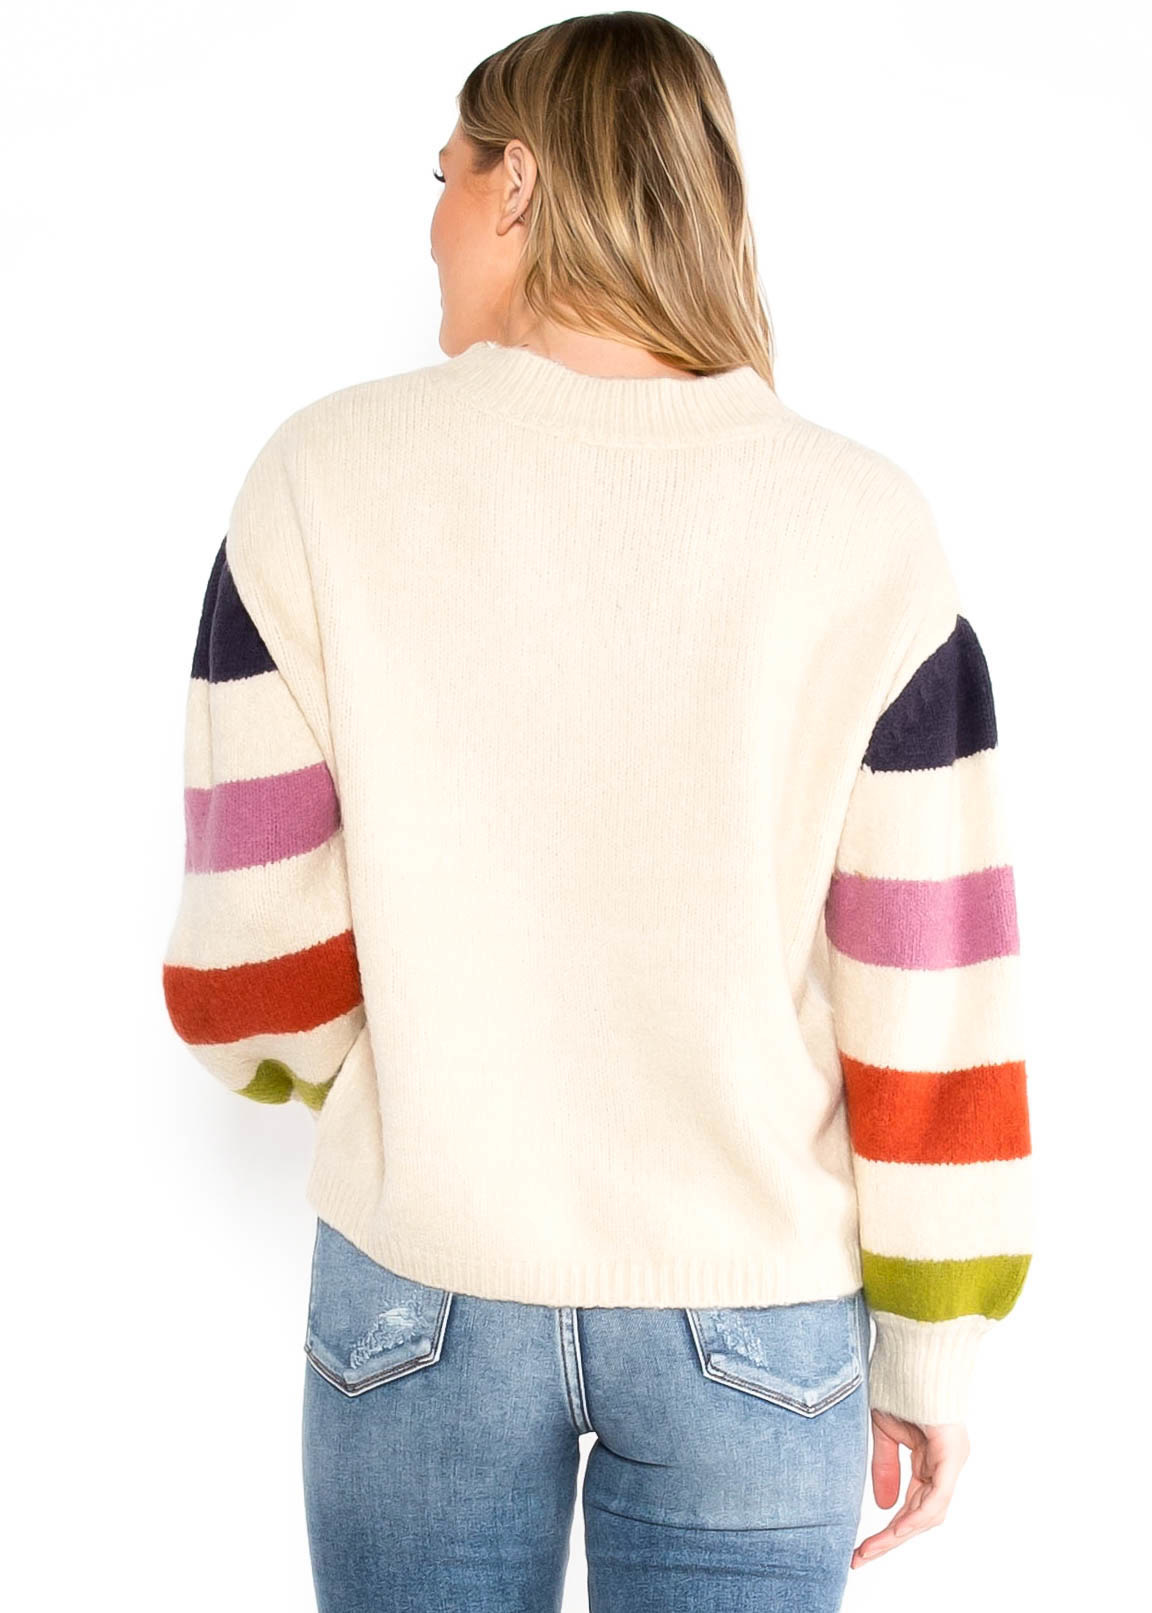 LIFE YOUR WAY STRIPED SWEATER